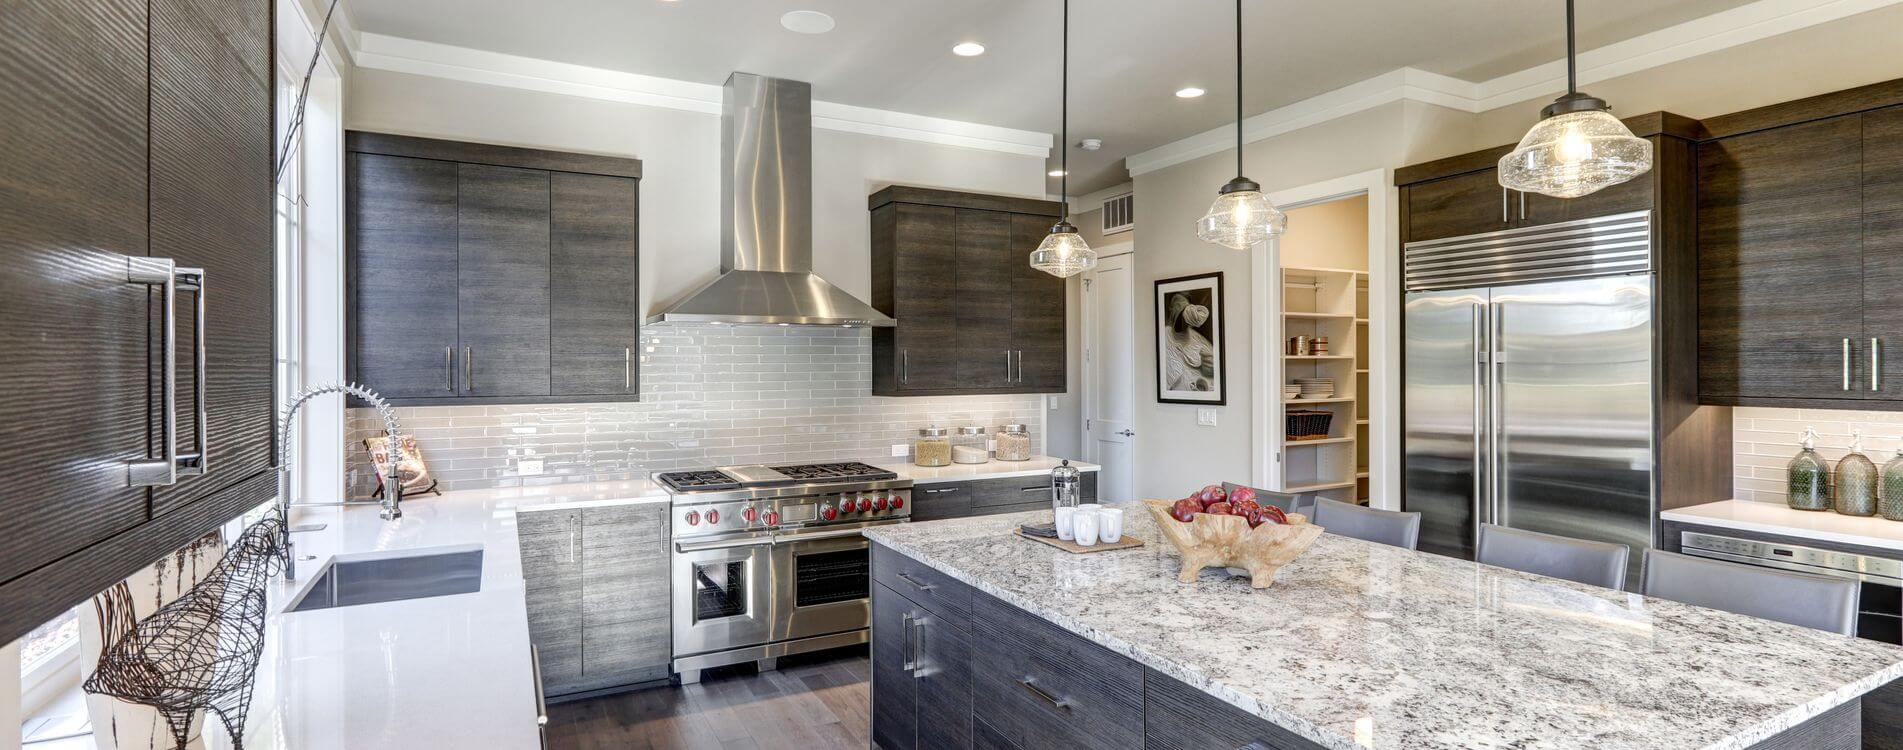 Quartz Worktops: A Complete Guide of 2020-21 To Caring For Your Quartz Worktops with Pro & Cons - Granite Countetops/ Worktops, Quartz, Countetops/ Worktops vs Marbles Countetops/ Worktops - AstrumGranite  (+44)203-290-8427